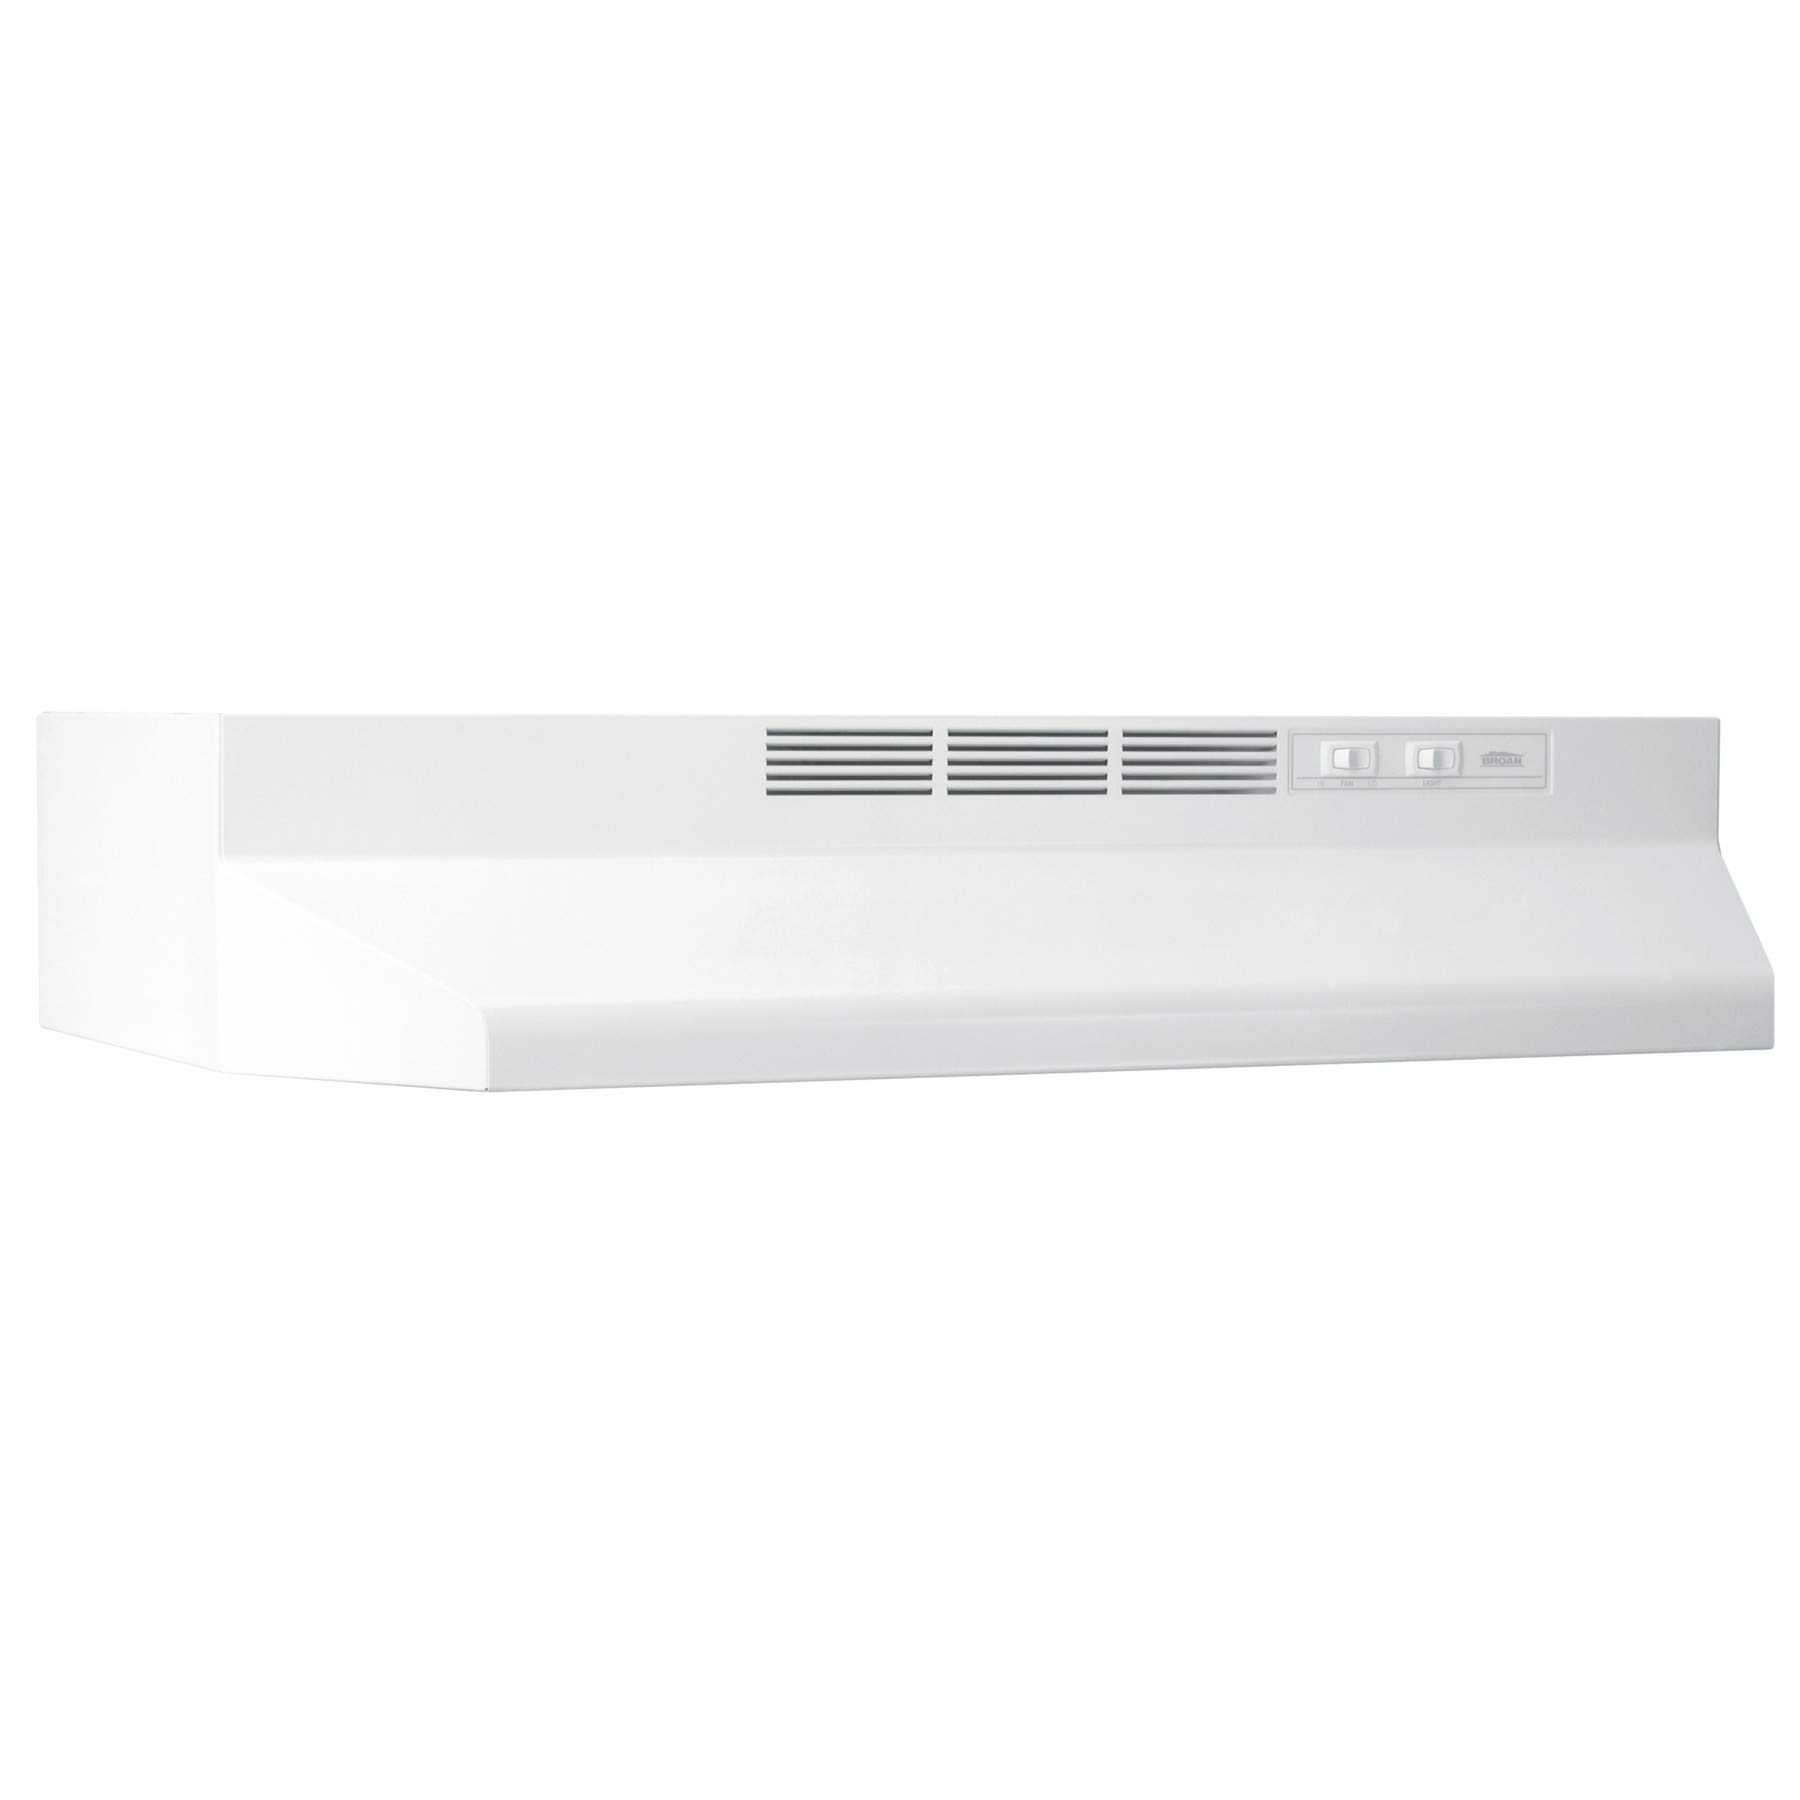 Broan-NuTone BUEZ136WW Non-Ducted Ductless Range Hood with Lights Exhaust Fan for Under Cabinet, 36-Inch, White